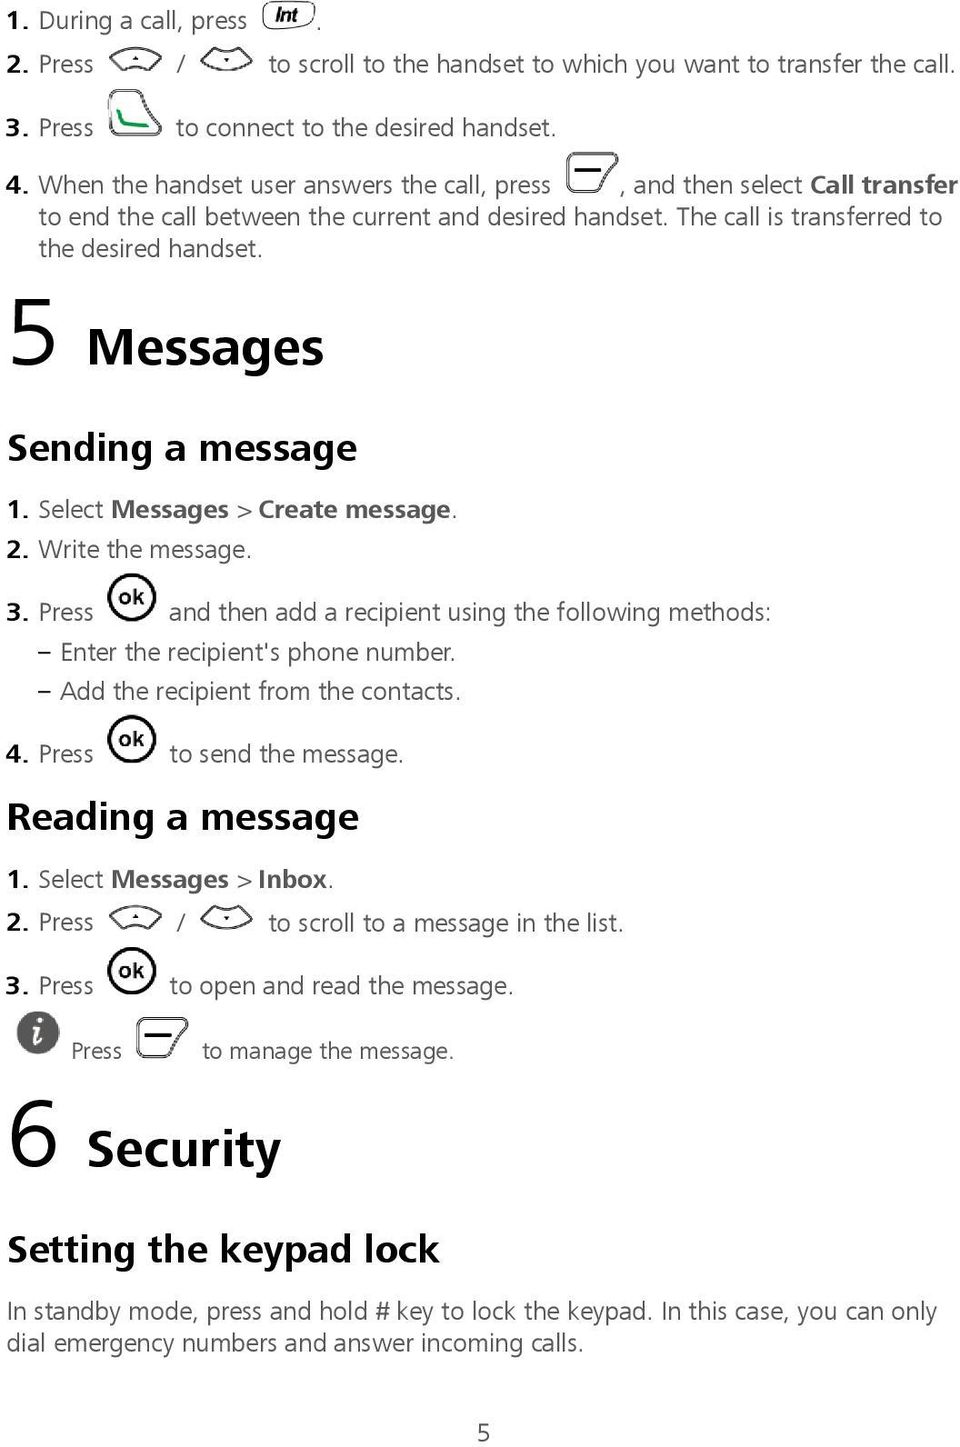 5 Messages Sending a message 1. Select Messages > Create message. 2. Write the message. 3. Press and then add a recipient using the following methods: Enter the recipient's phone number.